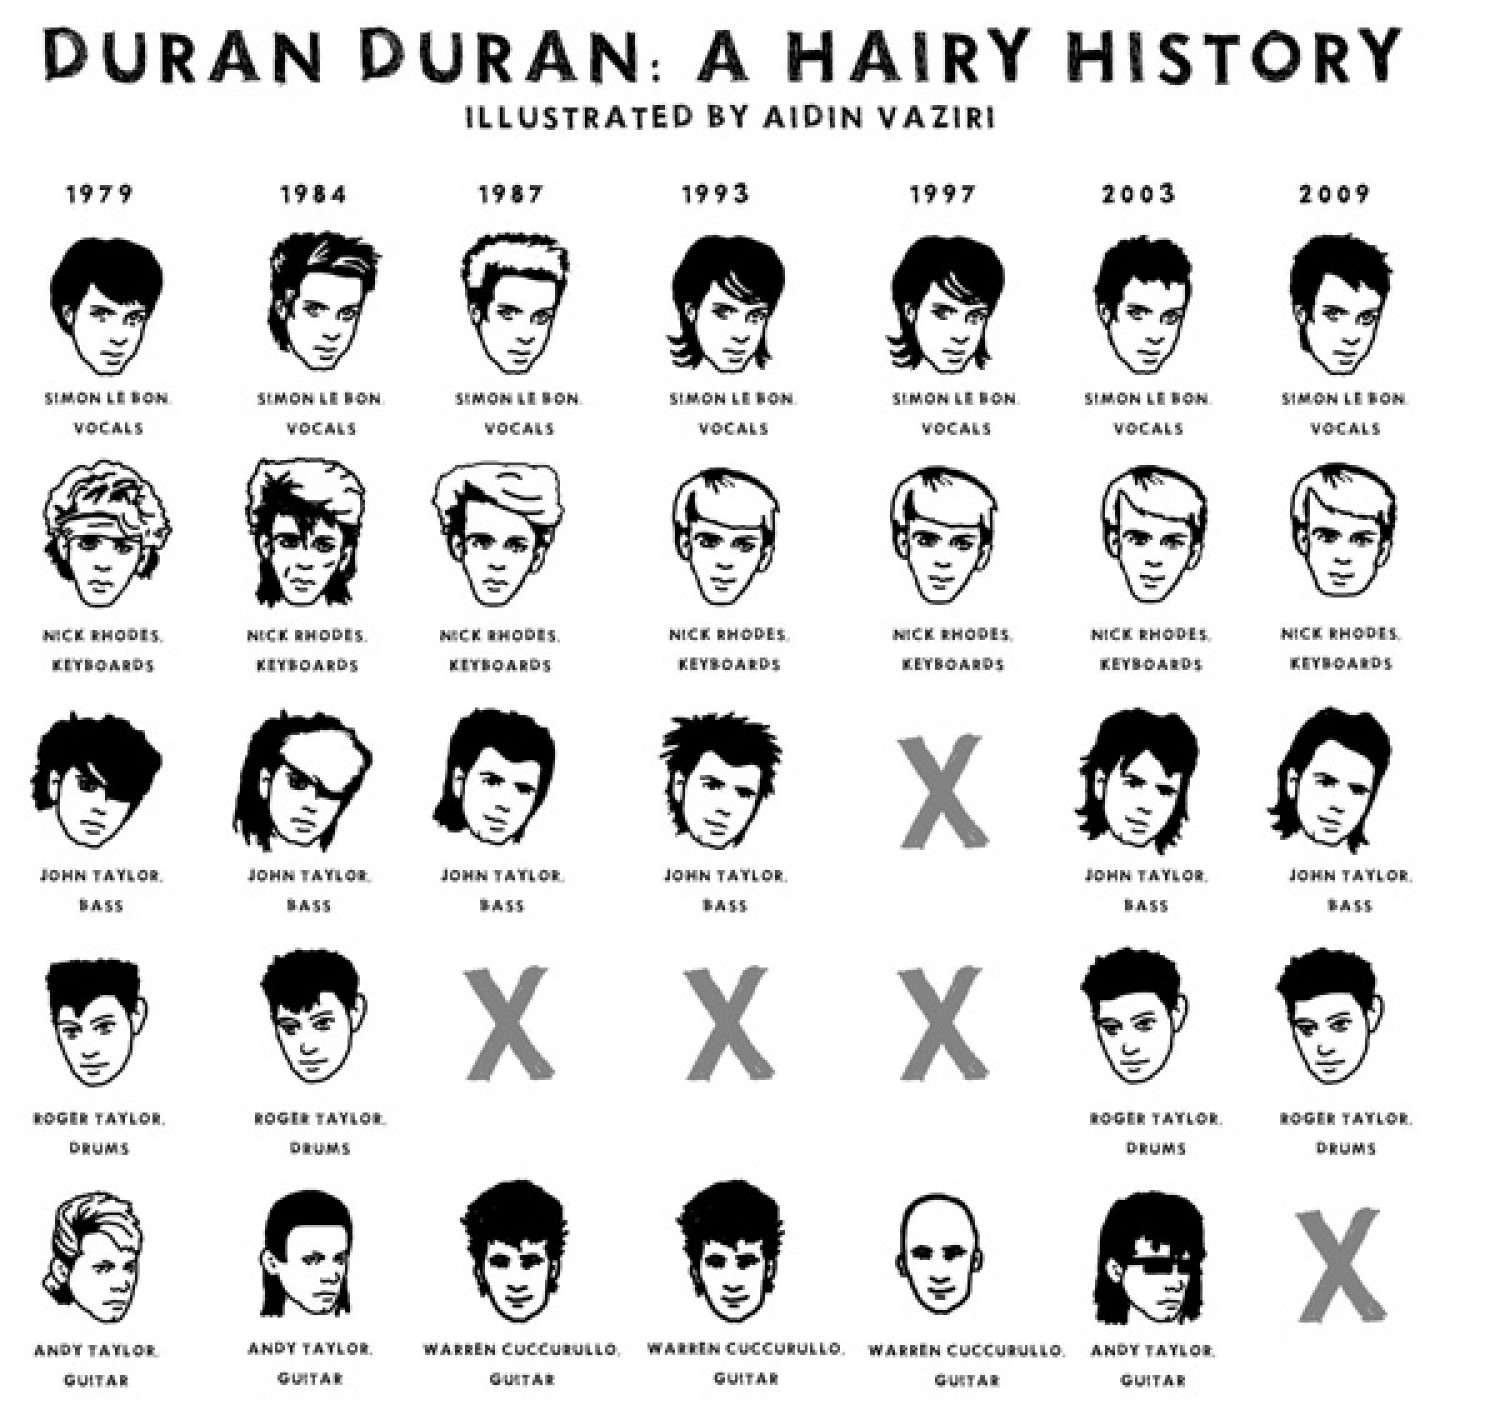 30 Years of Duran Duran's Hair Infographic